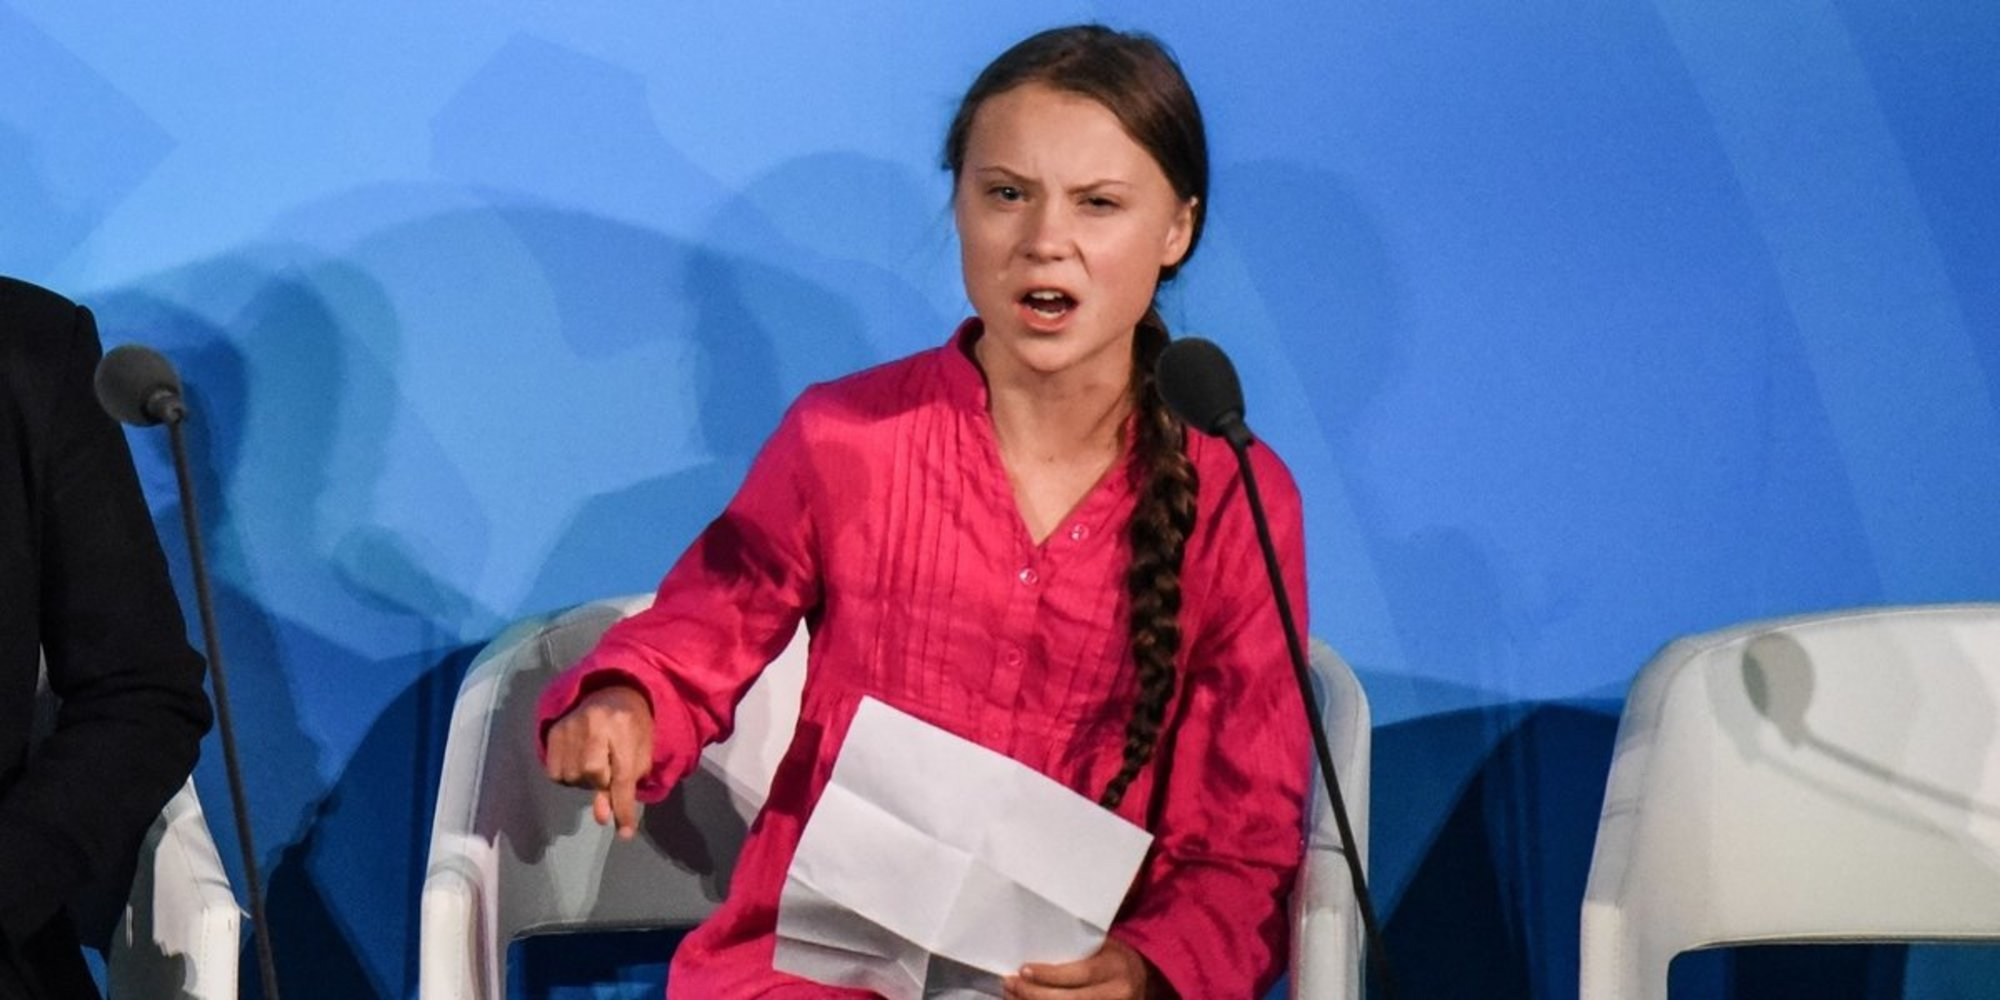 Greta Thunberg speech at the UN Summit on climate change how dare you meme